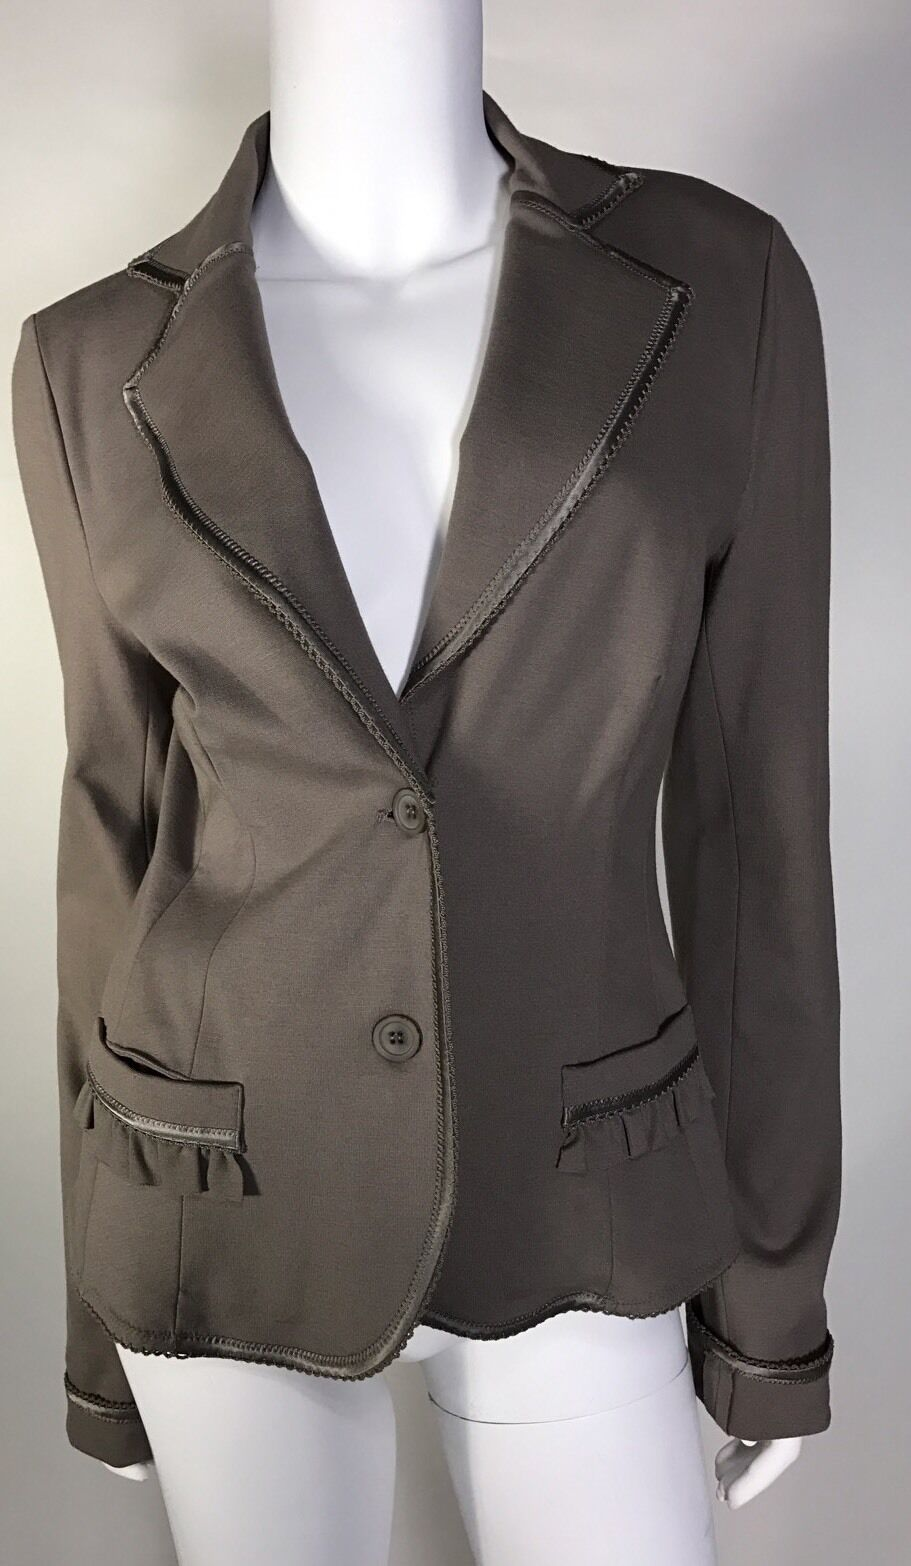 NWOT Paola Frani Woman Blazer Giacca Made In  SZ 8 US Beauty